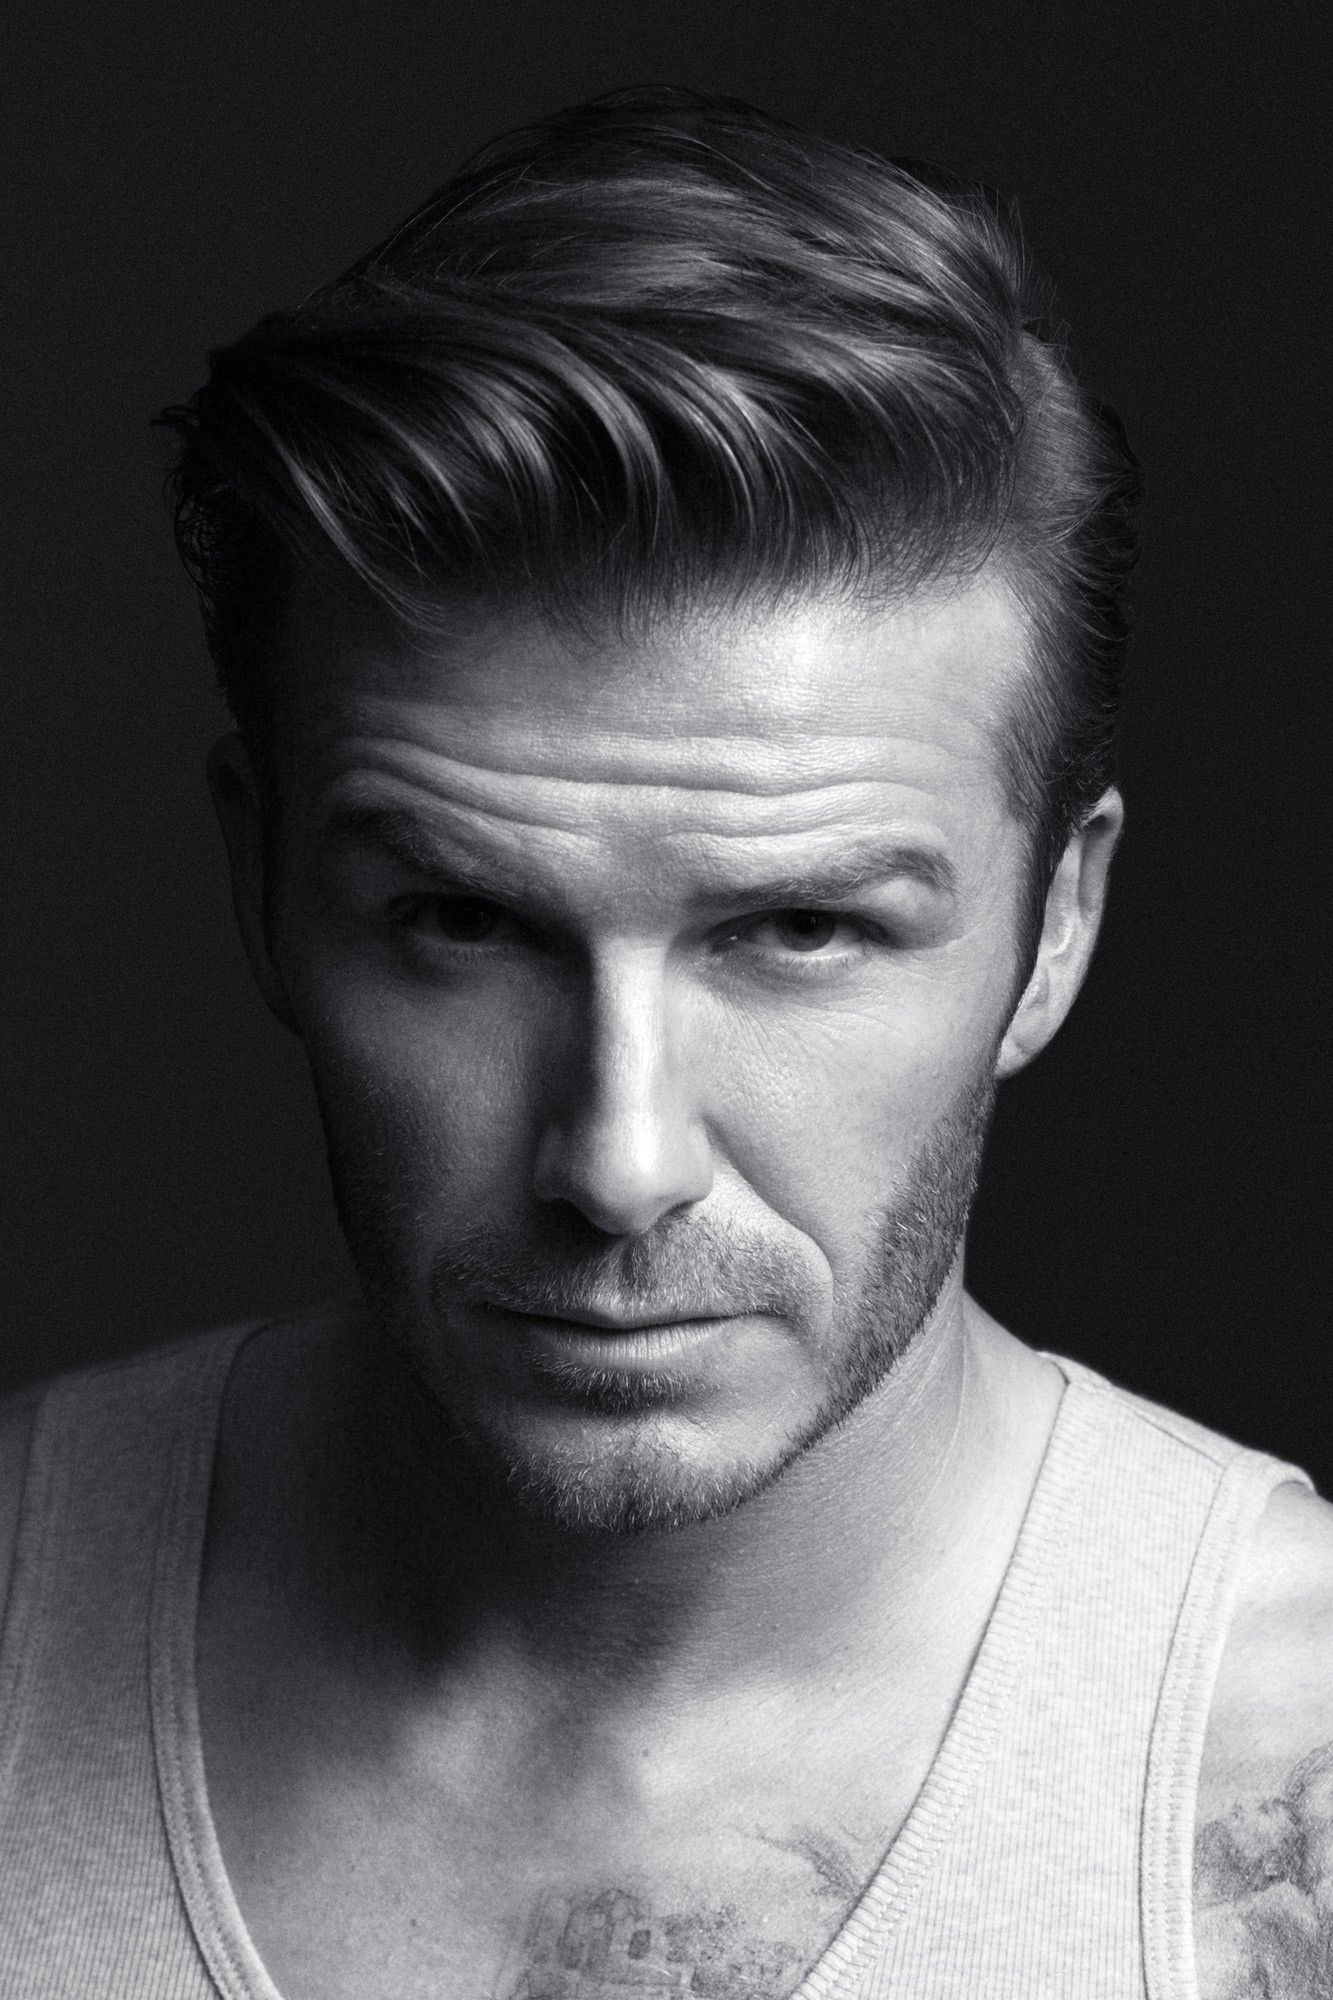 Mens Undercut Hairstyle 1920s Best Hair Style Men Beckham Hair David Beckham Haircut Beckham Haircut